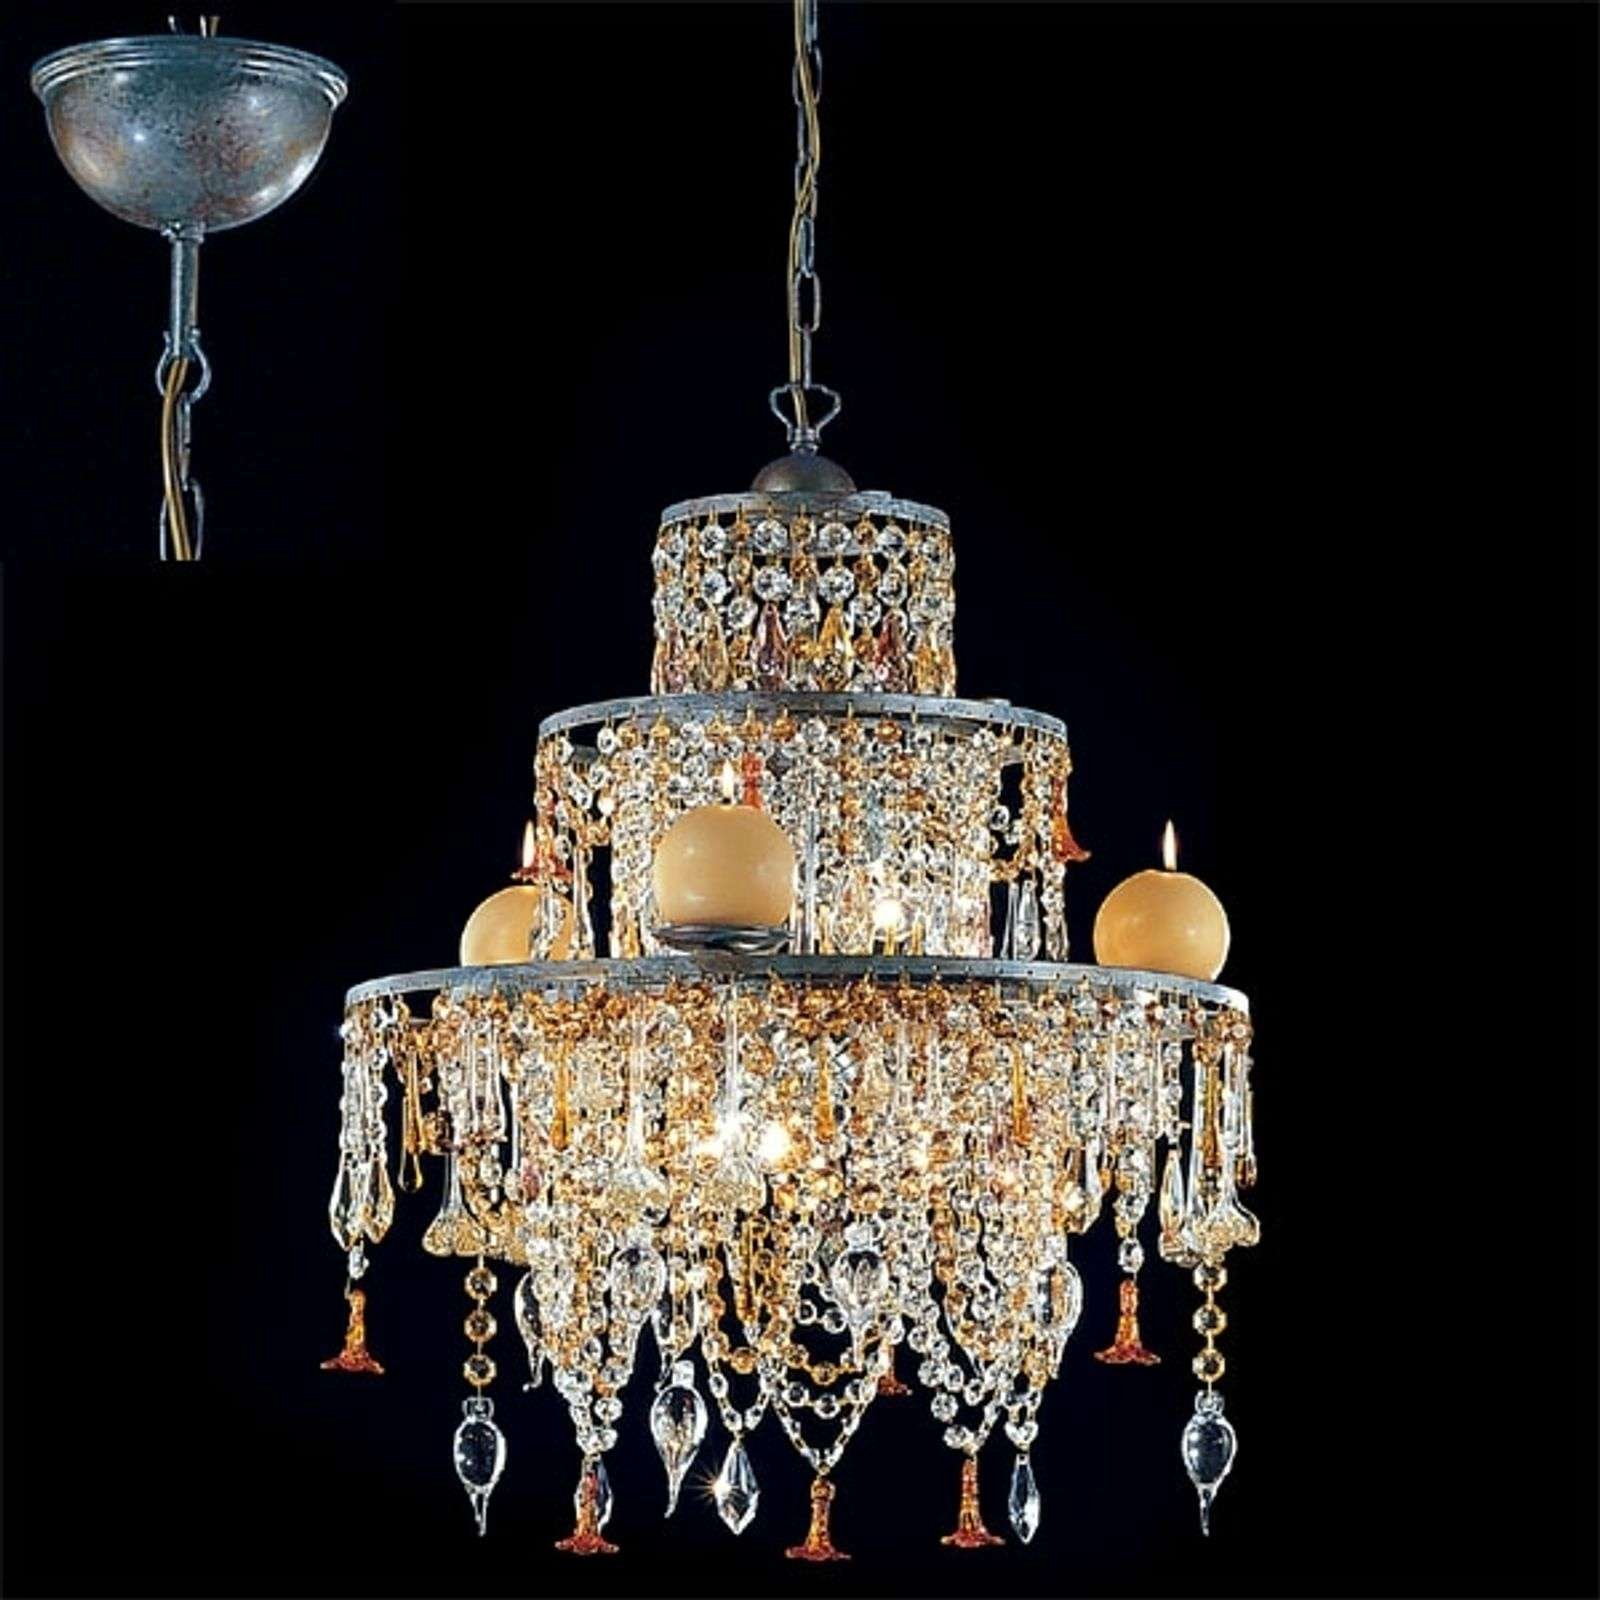 Suspension chandelier GOLDEN DREAM